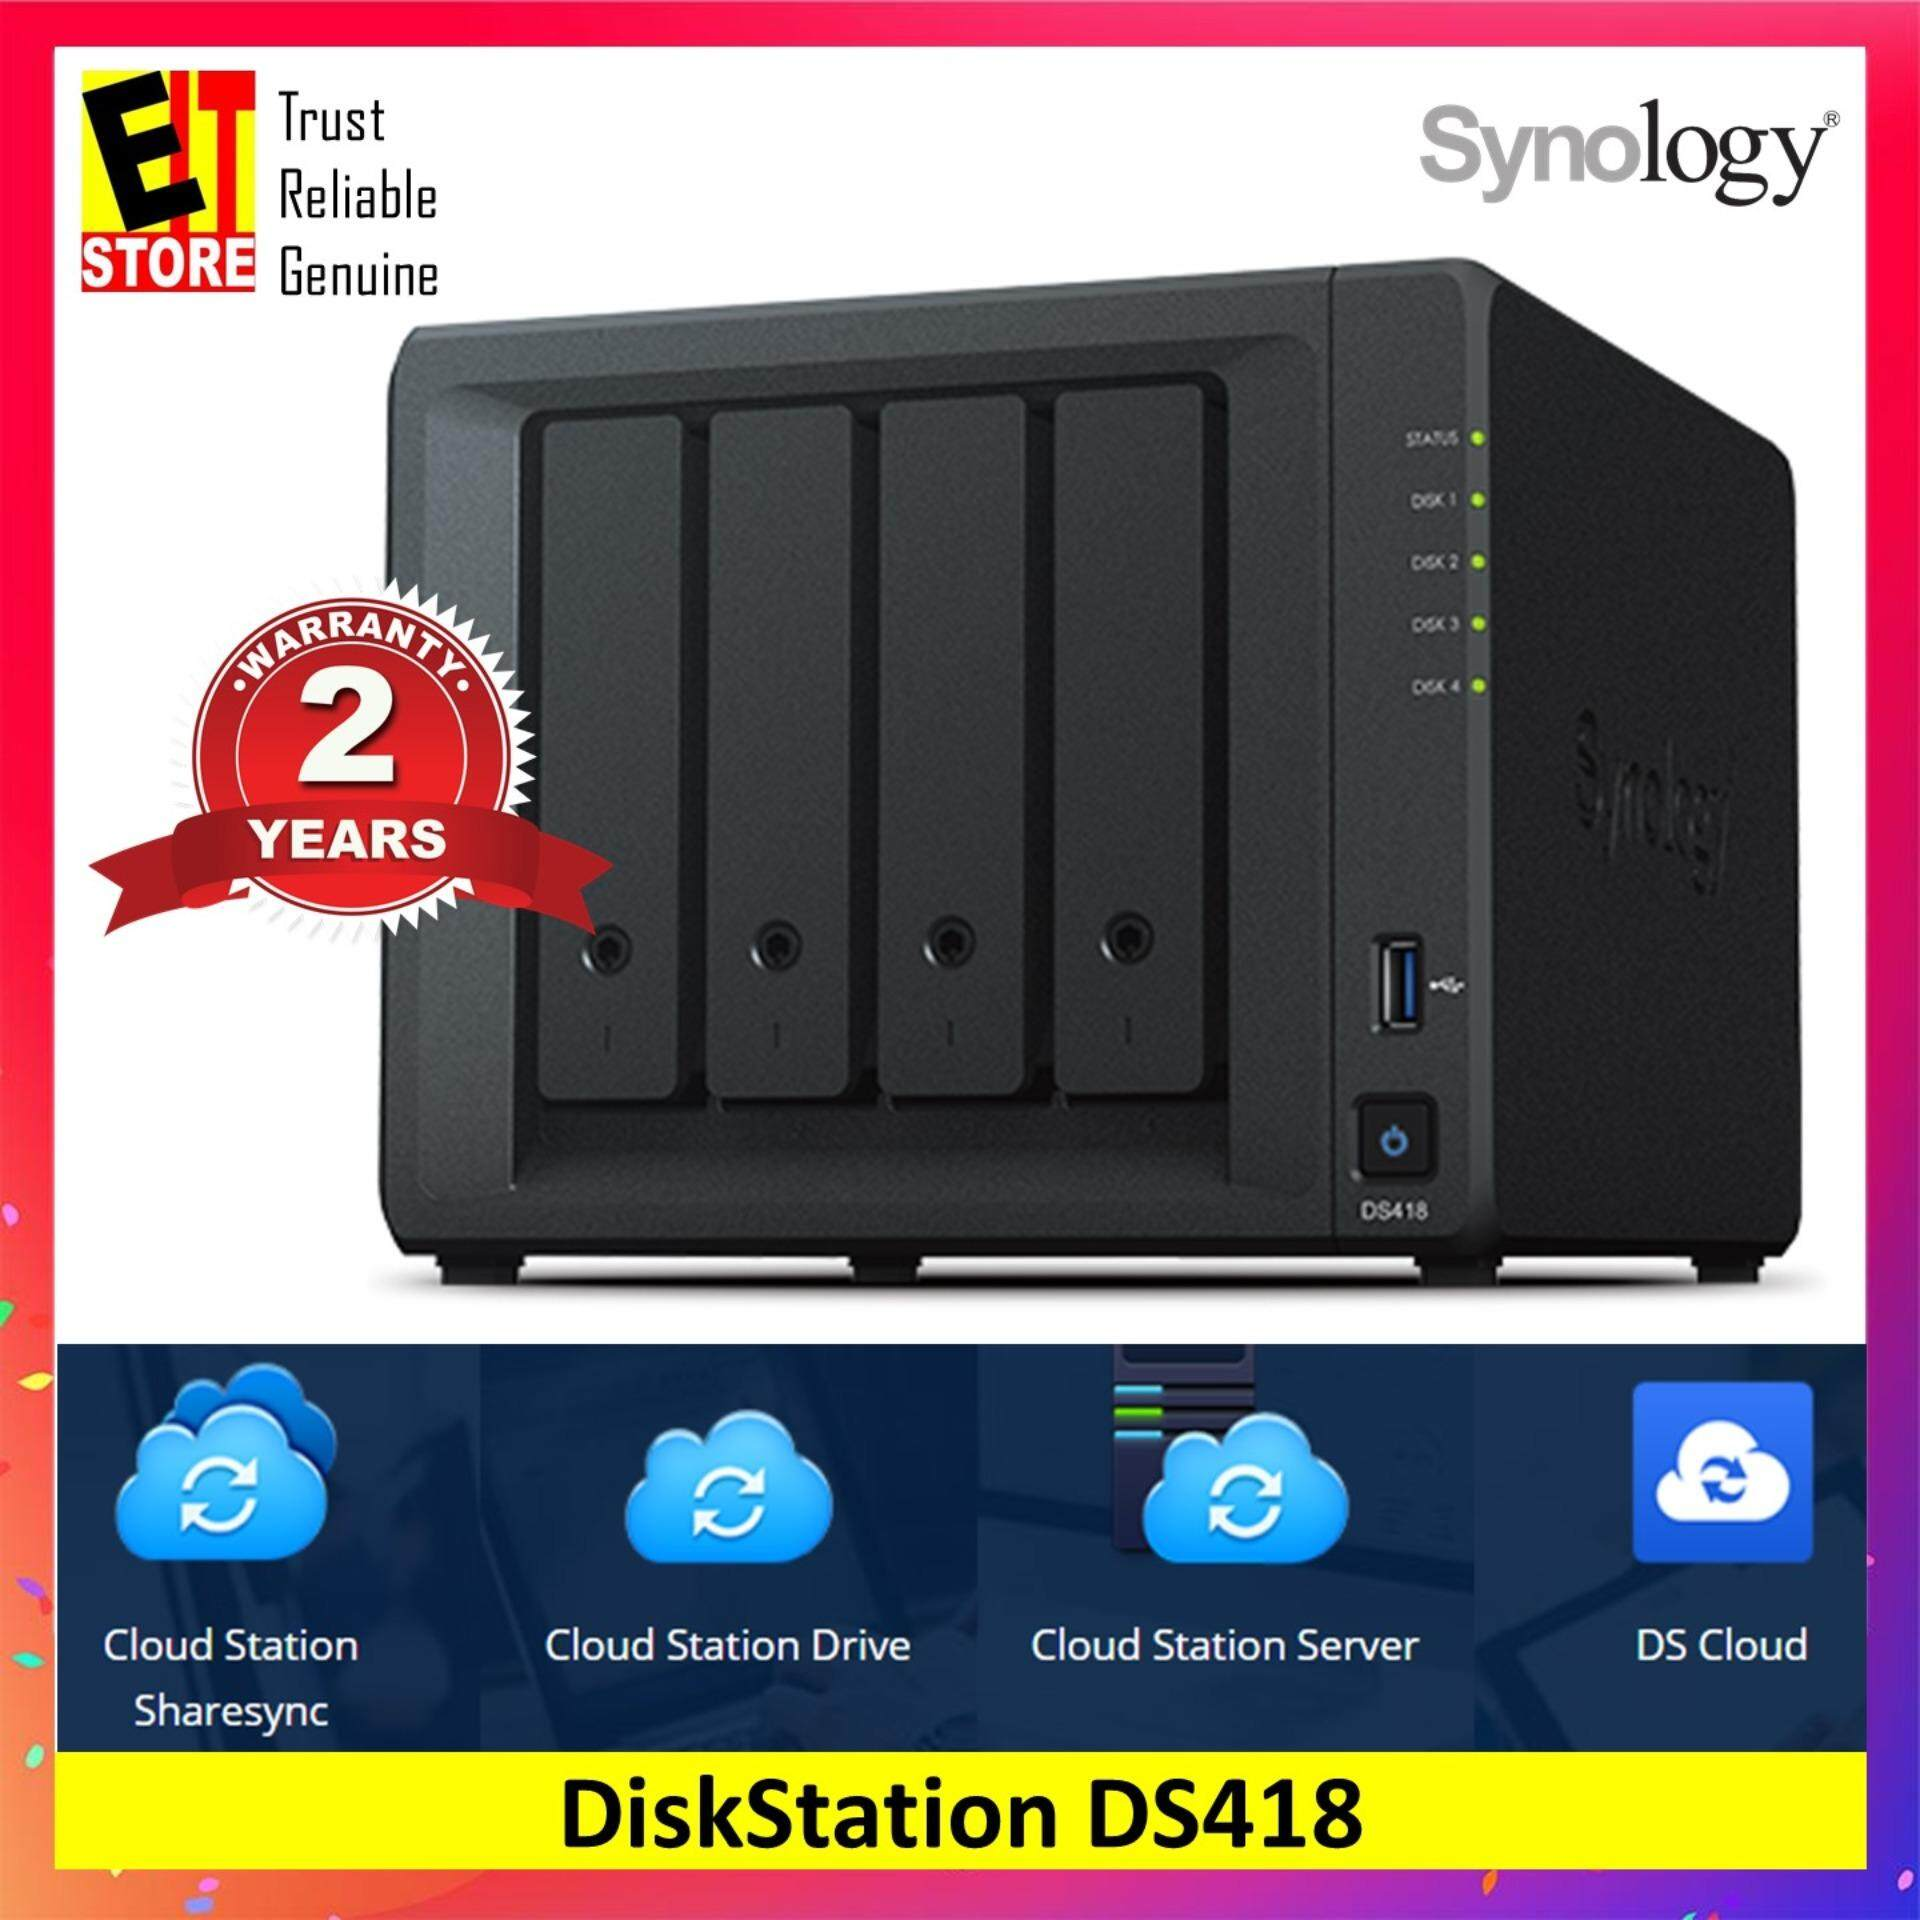 Synology Ds418 Nas Diskstation 4-Bays By Eit Store.